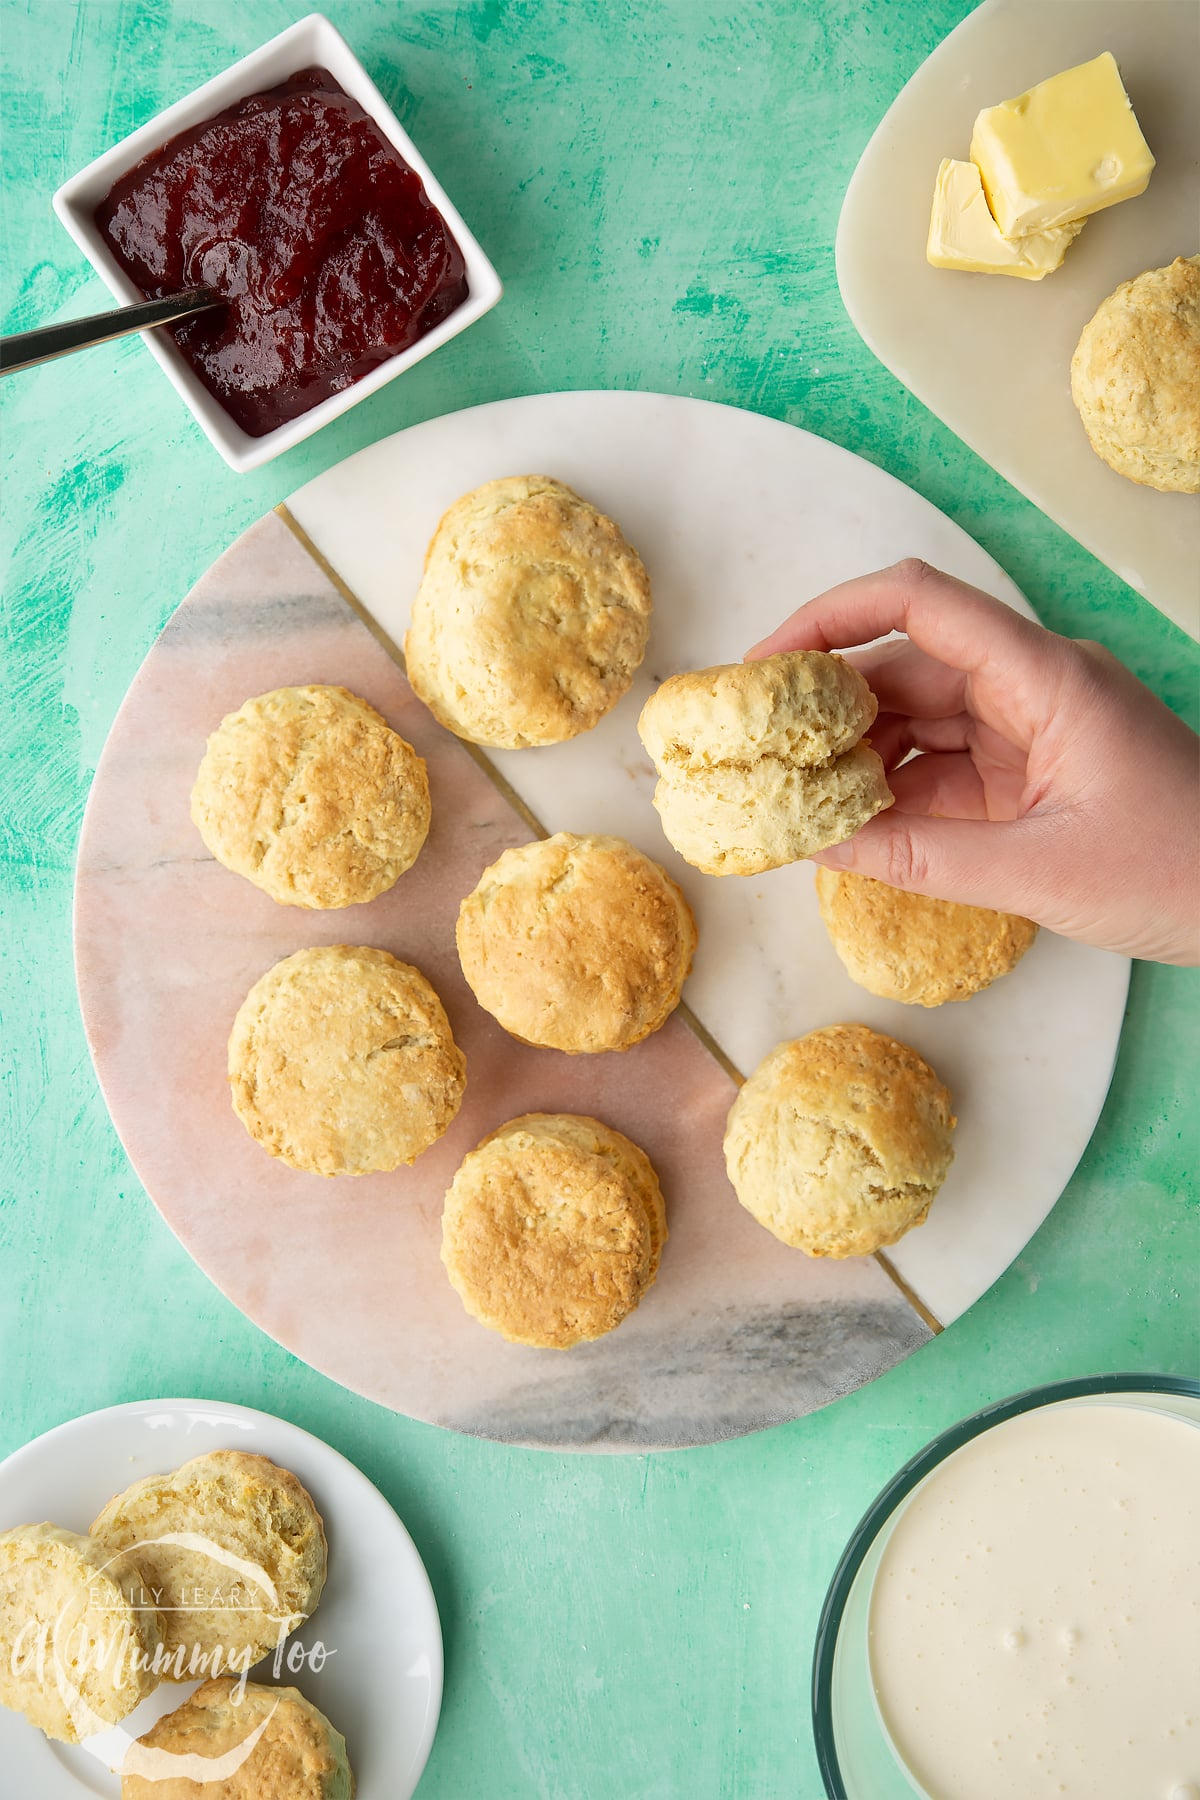 Dairy free scones on a round marble board plate. A hand holds one.